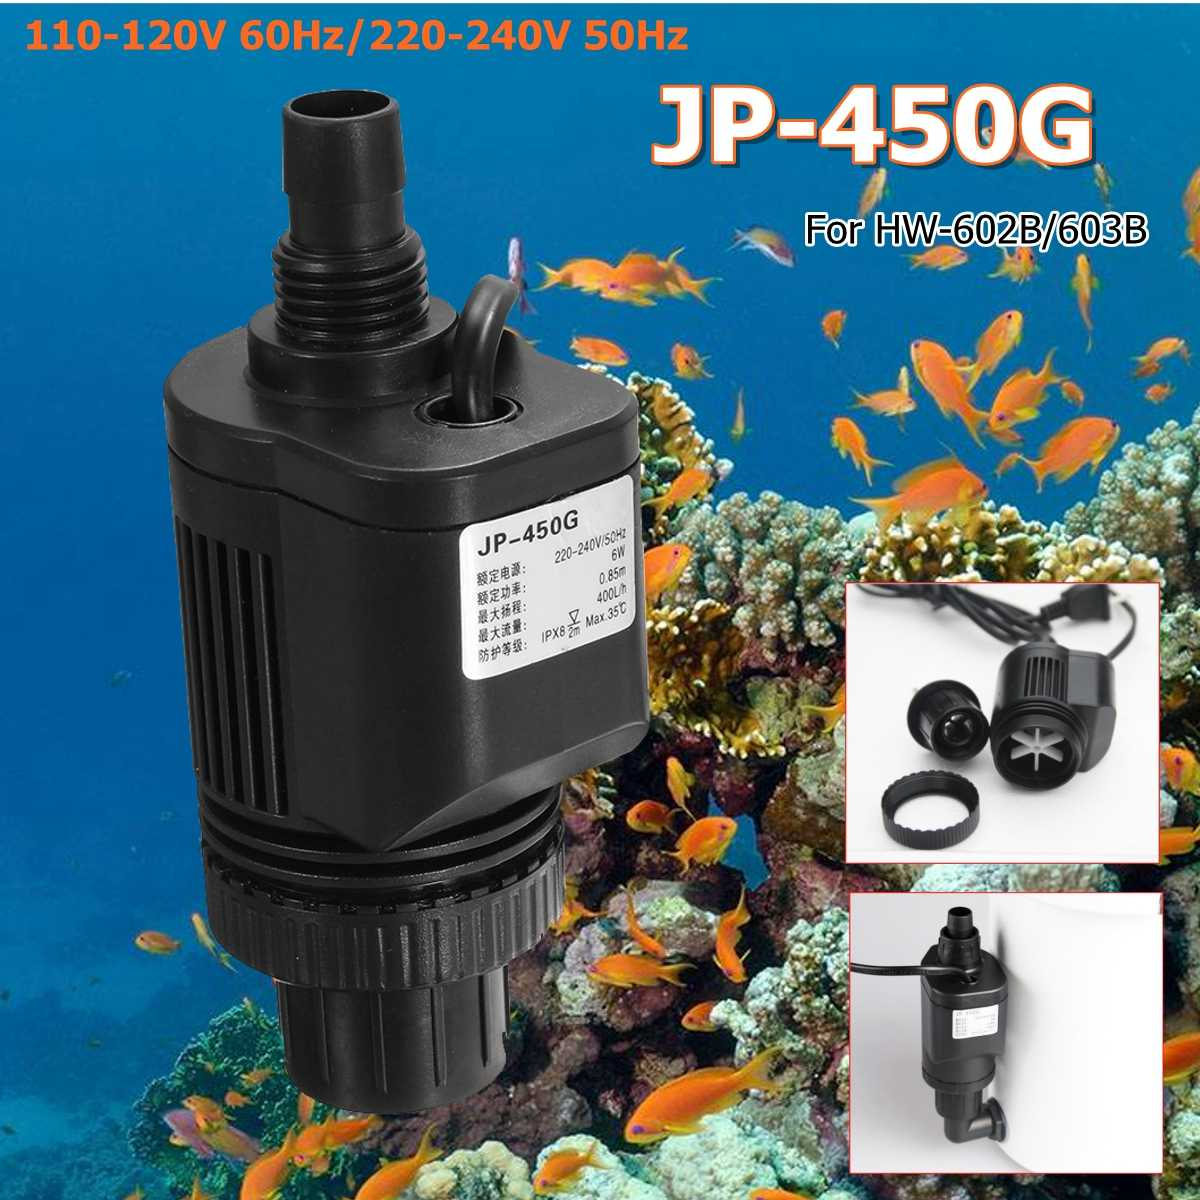 110-240V Sunsun JP-450G 6W Water Pump for HW-603b HW-602b Filter Canister Original Replacement image